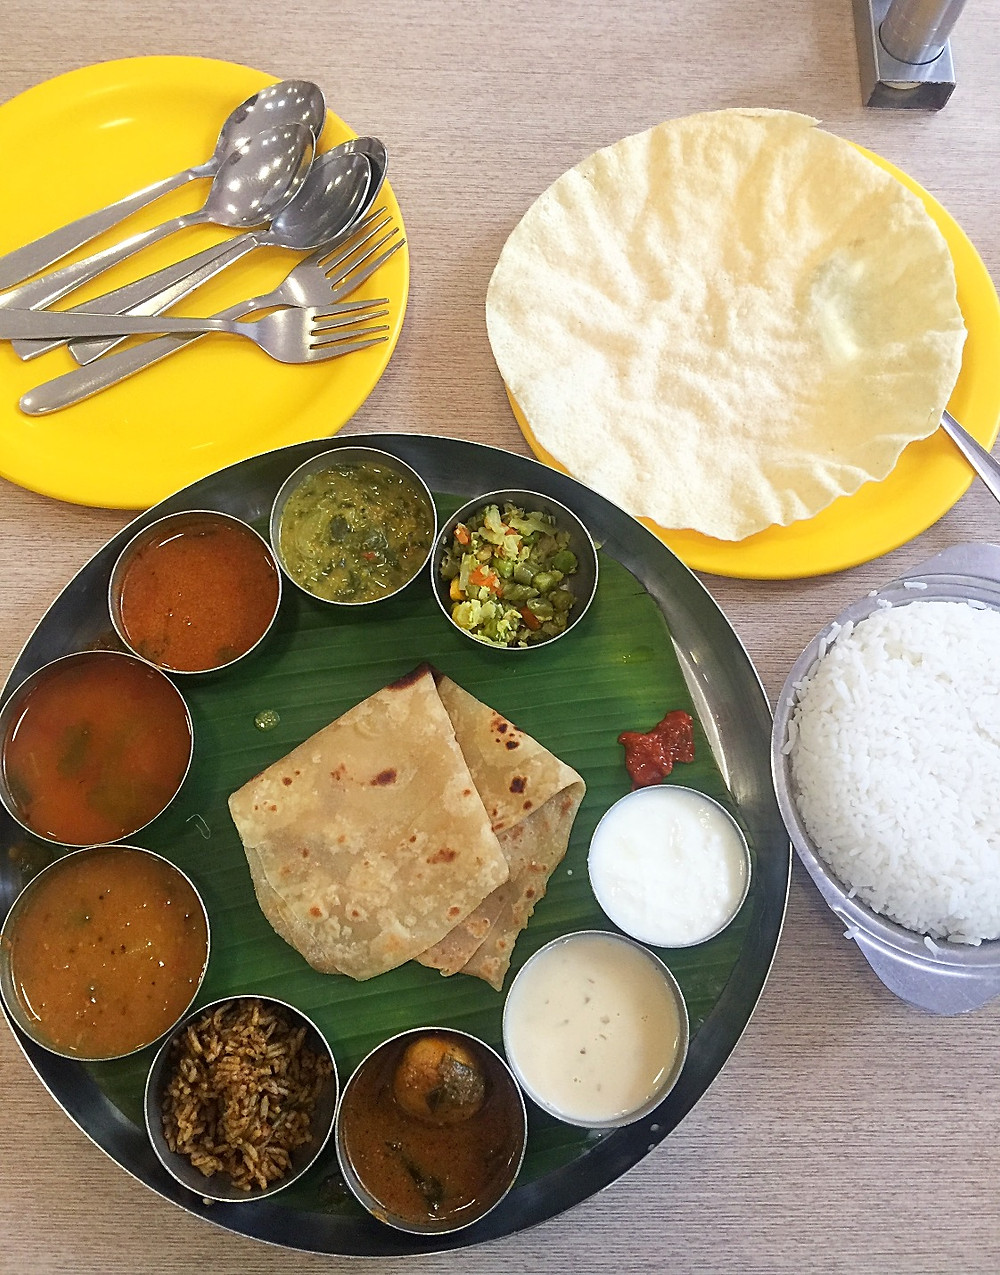 Full view of limited meals @ Sangeetha in Chennai